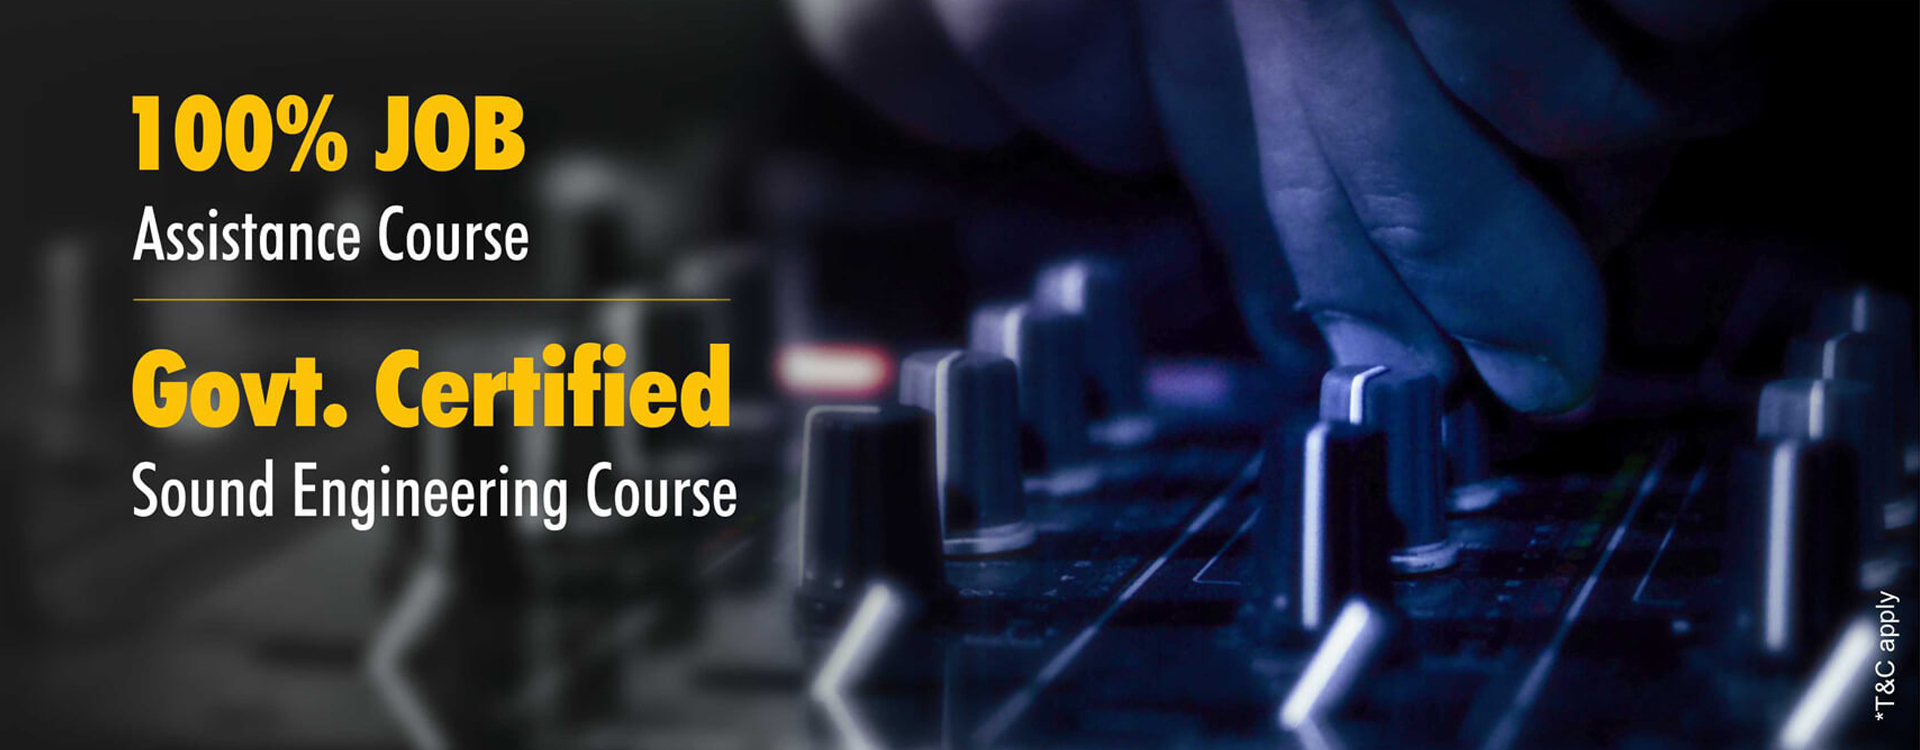 11th Anniversary Offer   Early Bird Offer   Enroll and save Big